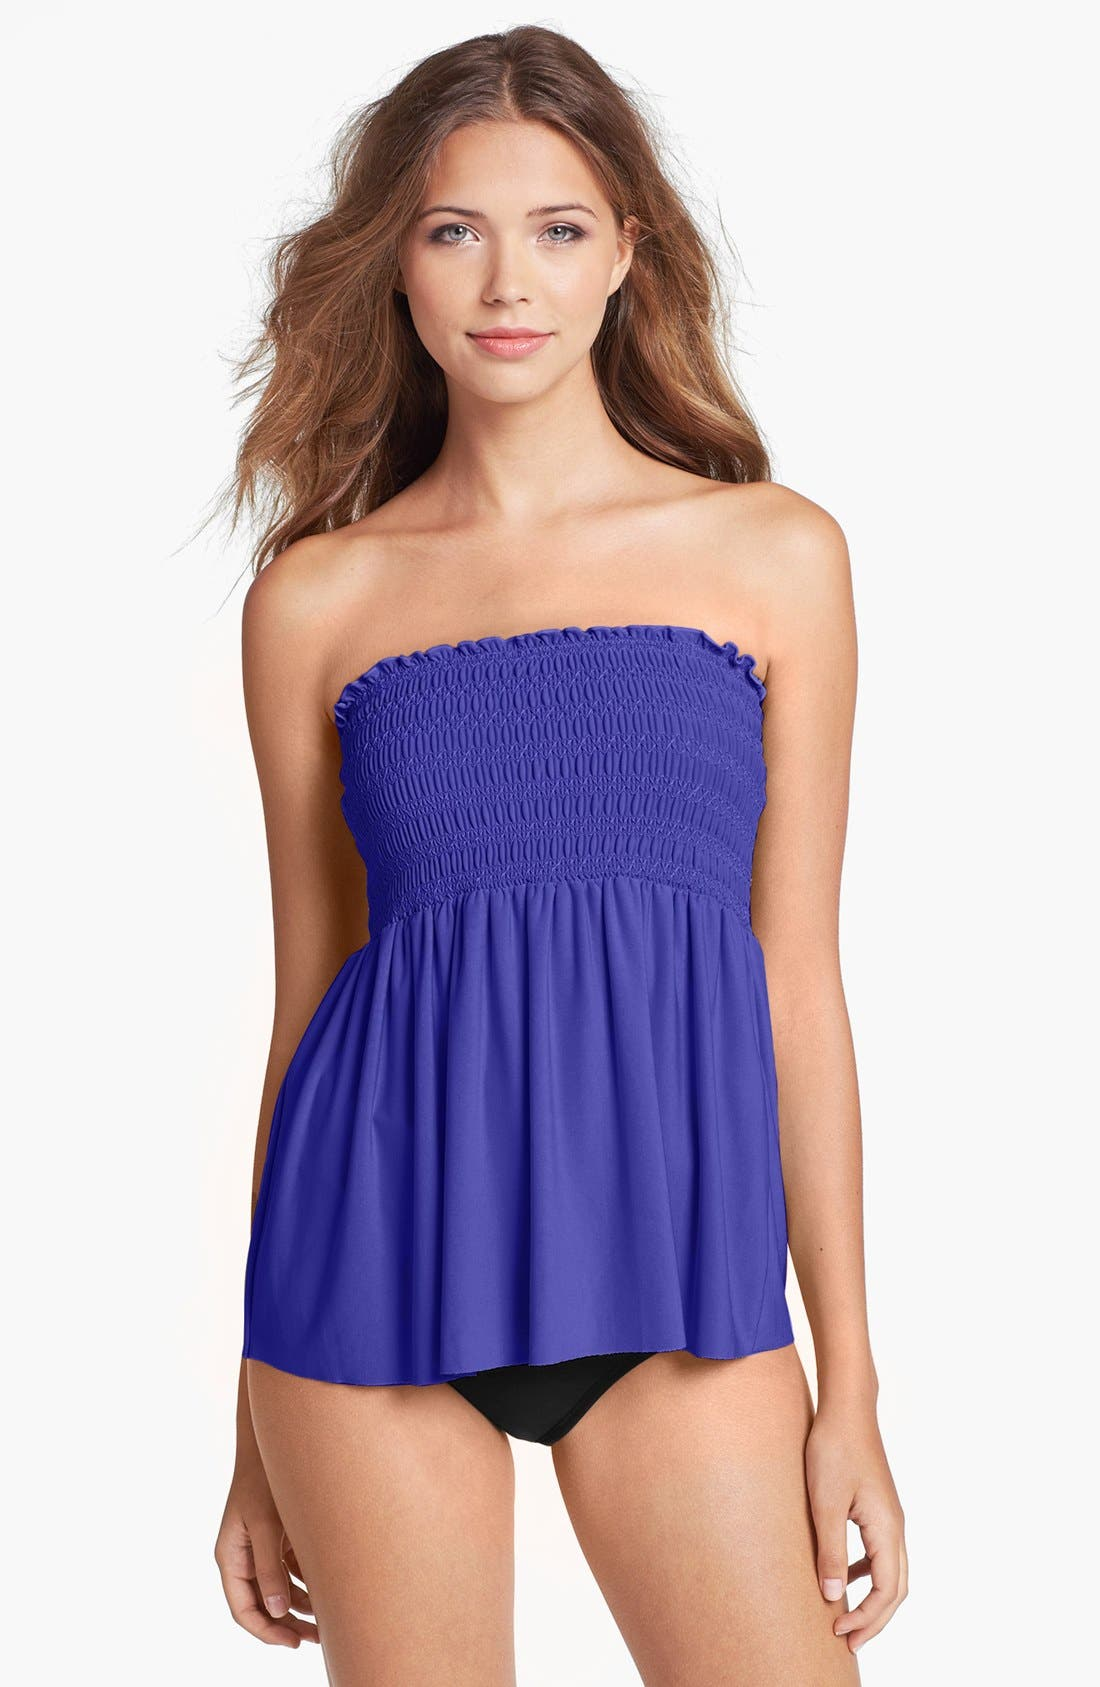 Alternate Image 1 Selected - Magic Suit by Miraclesuit® 'Vicki' Underwire Bandeau Tankini Top